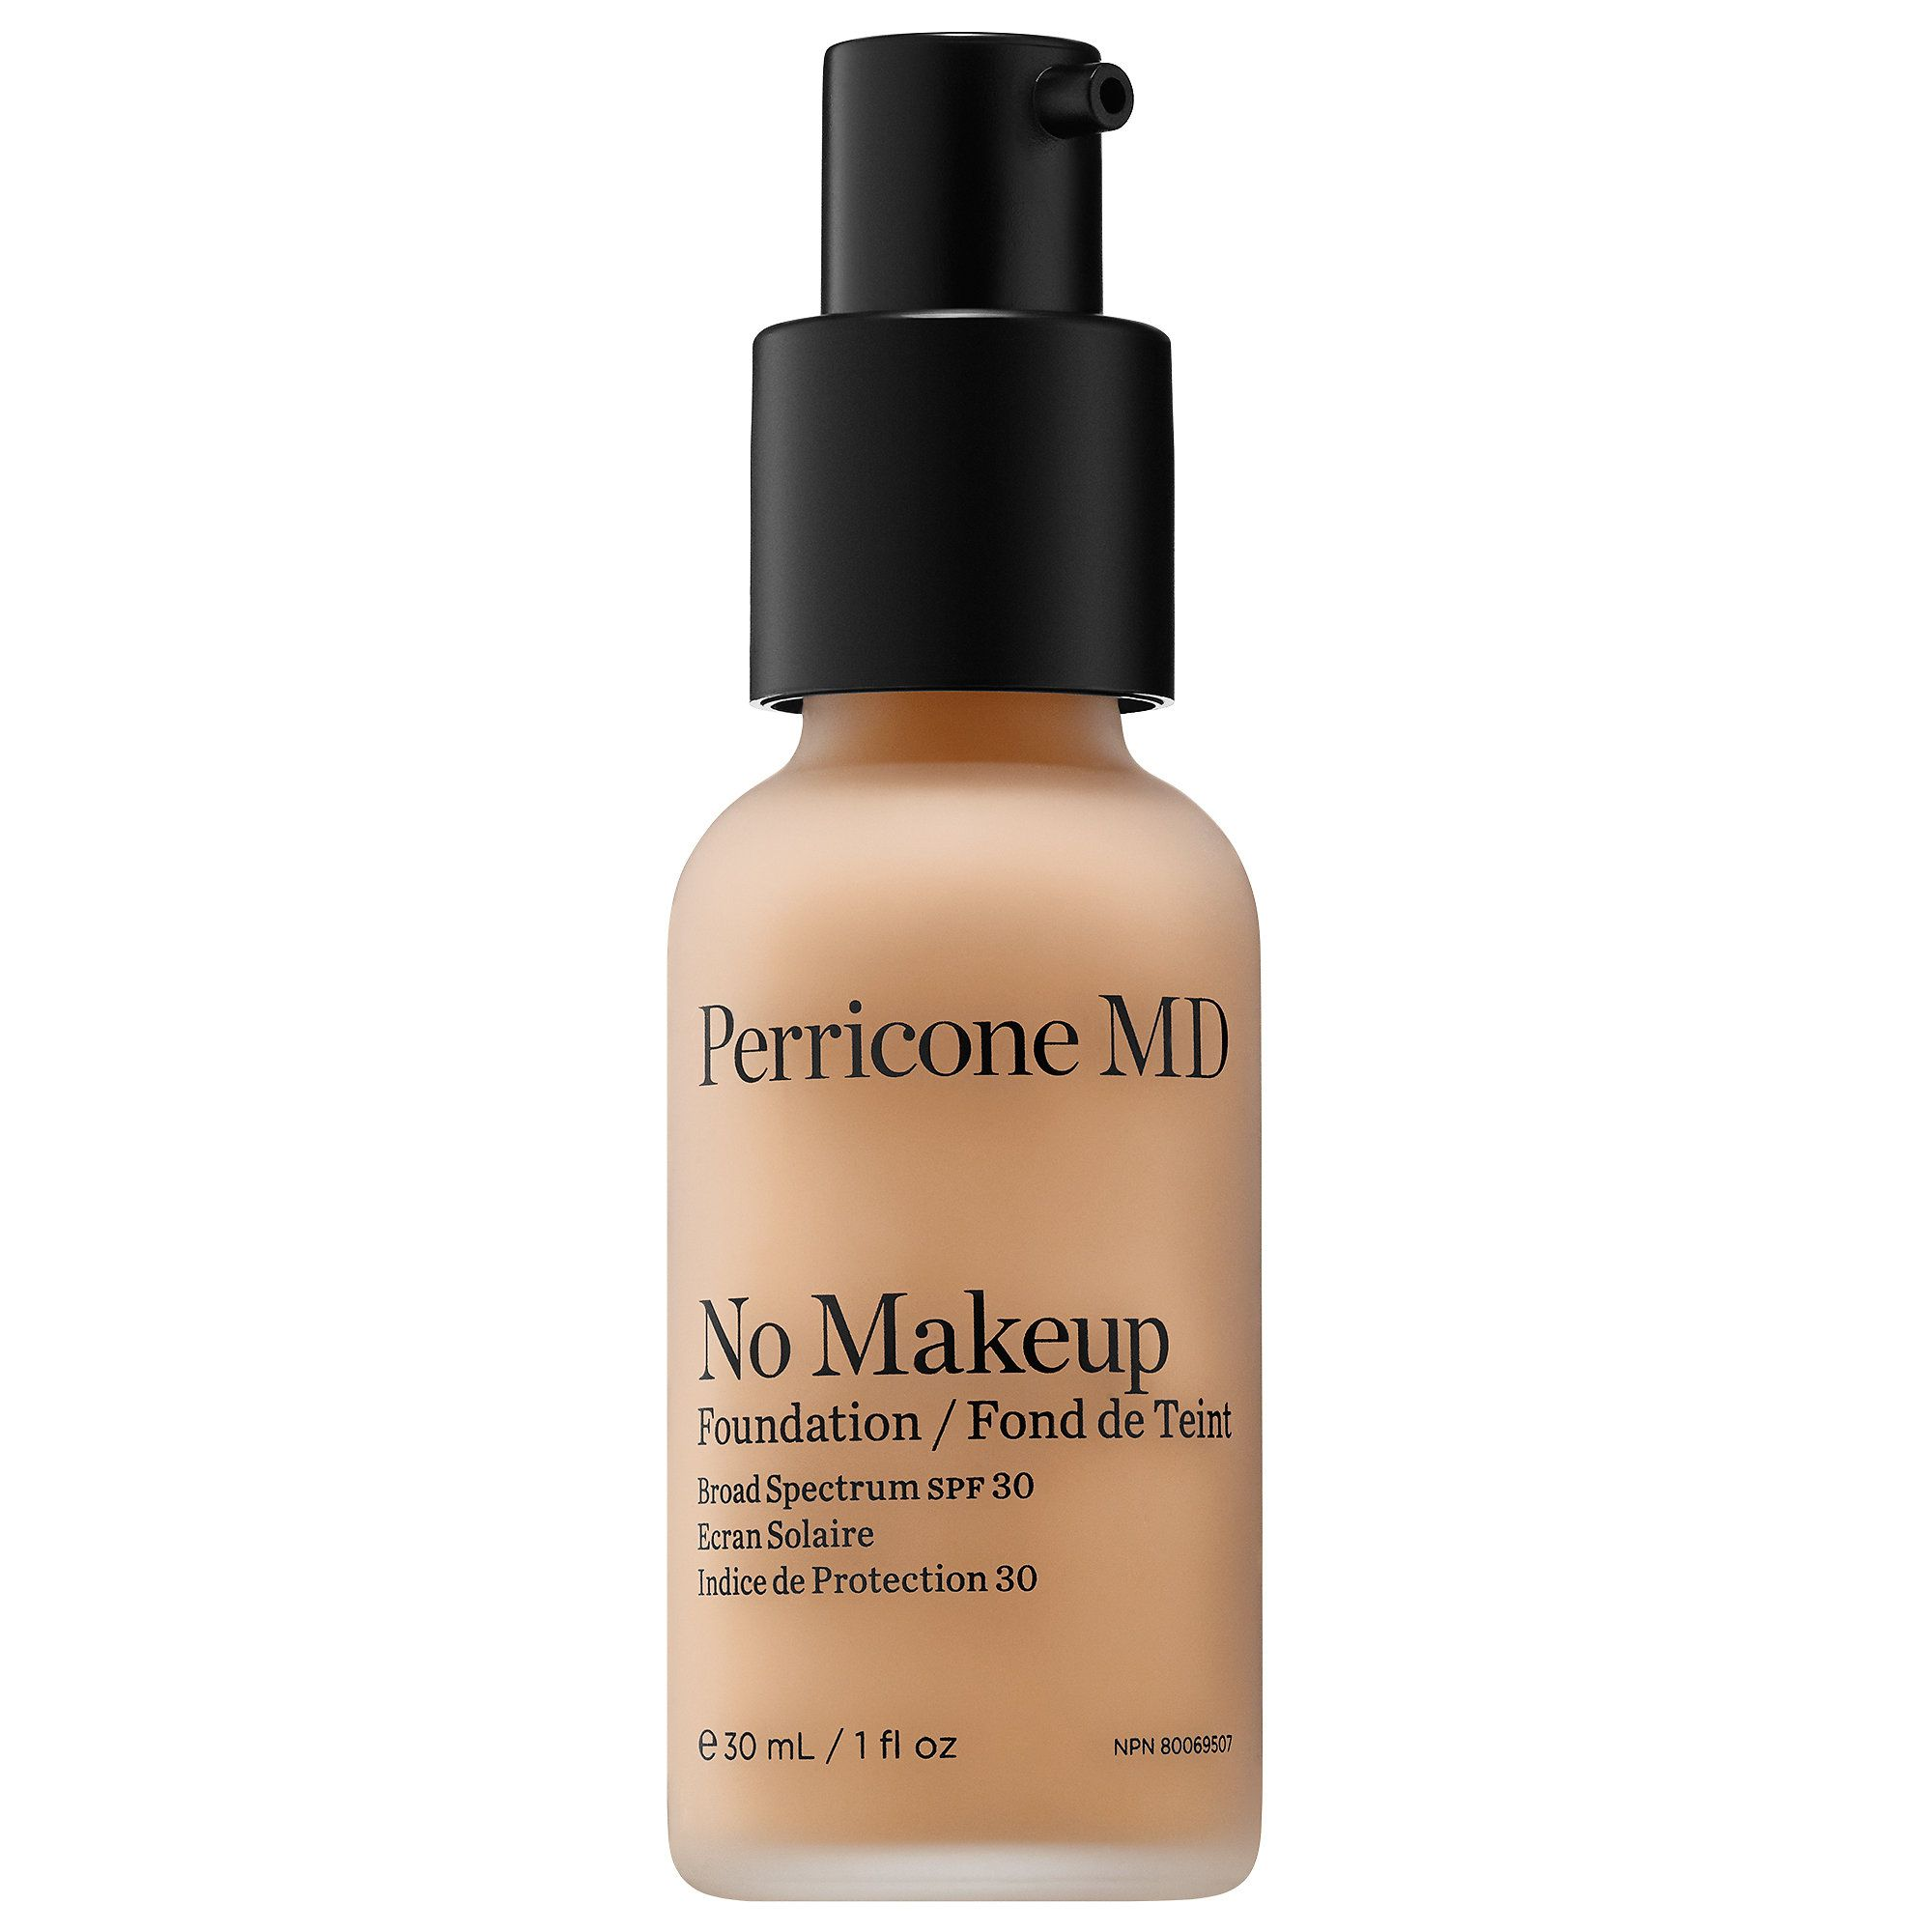 Perricone MD - Perricone MD No Makeup Foundation SPF 20